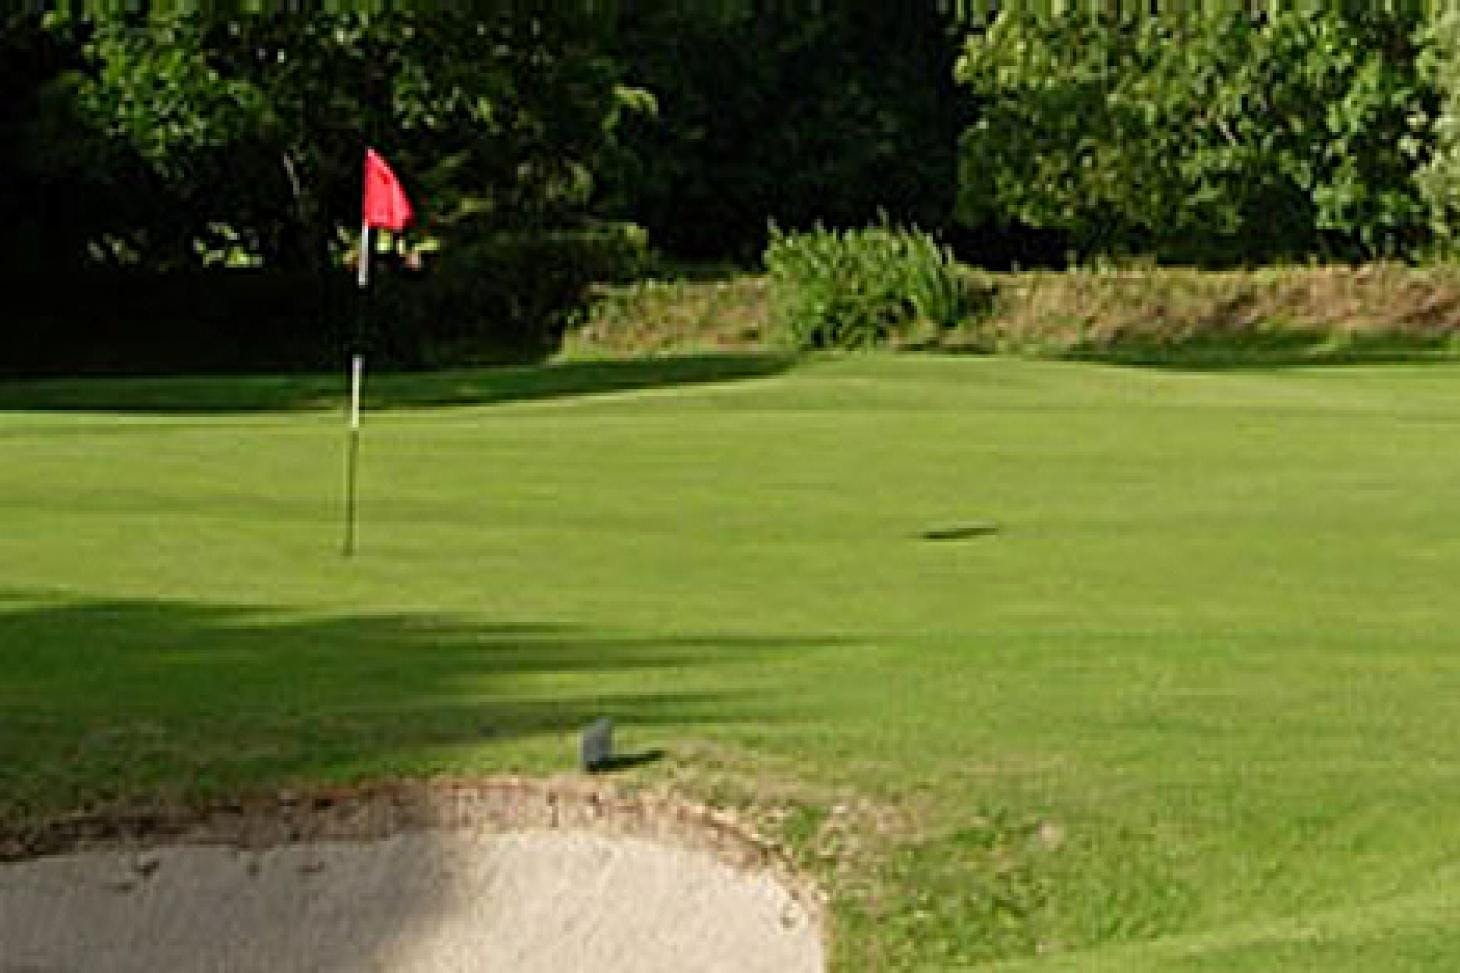 dlr Stepaside 9 hole | Yes golf course